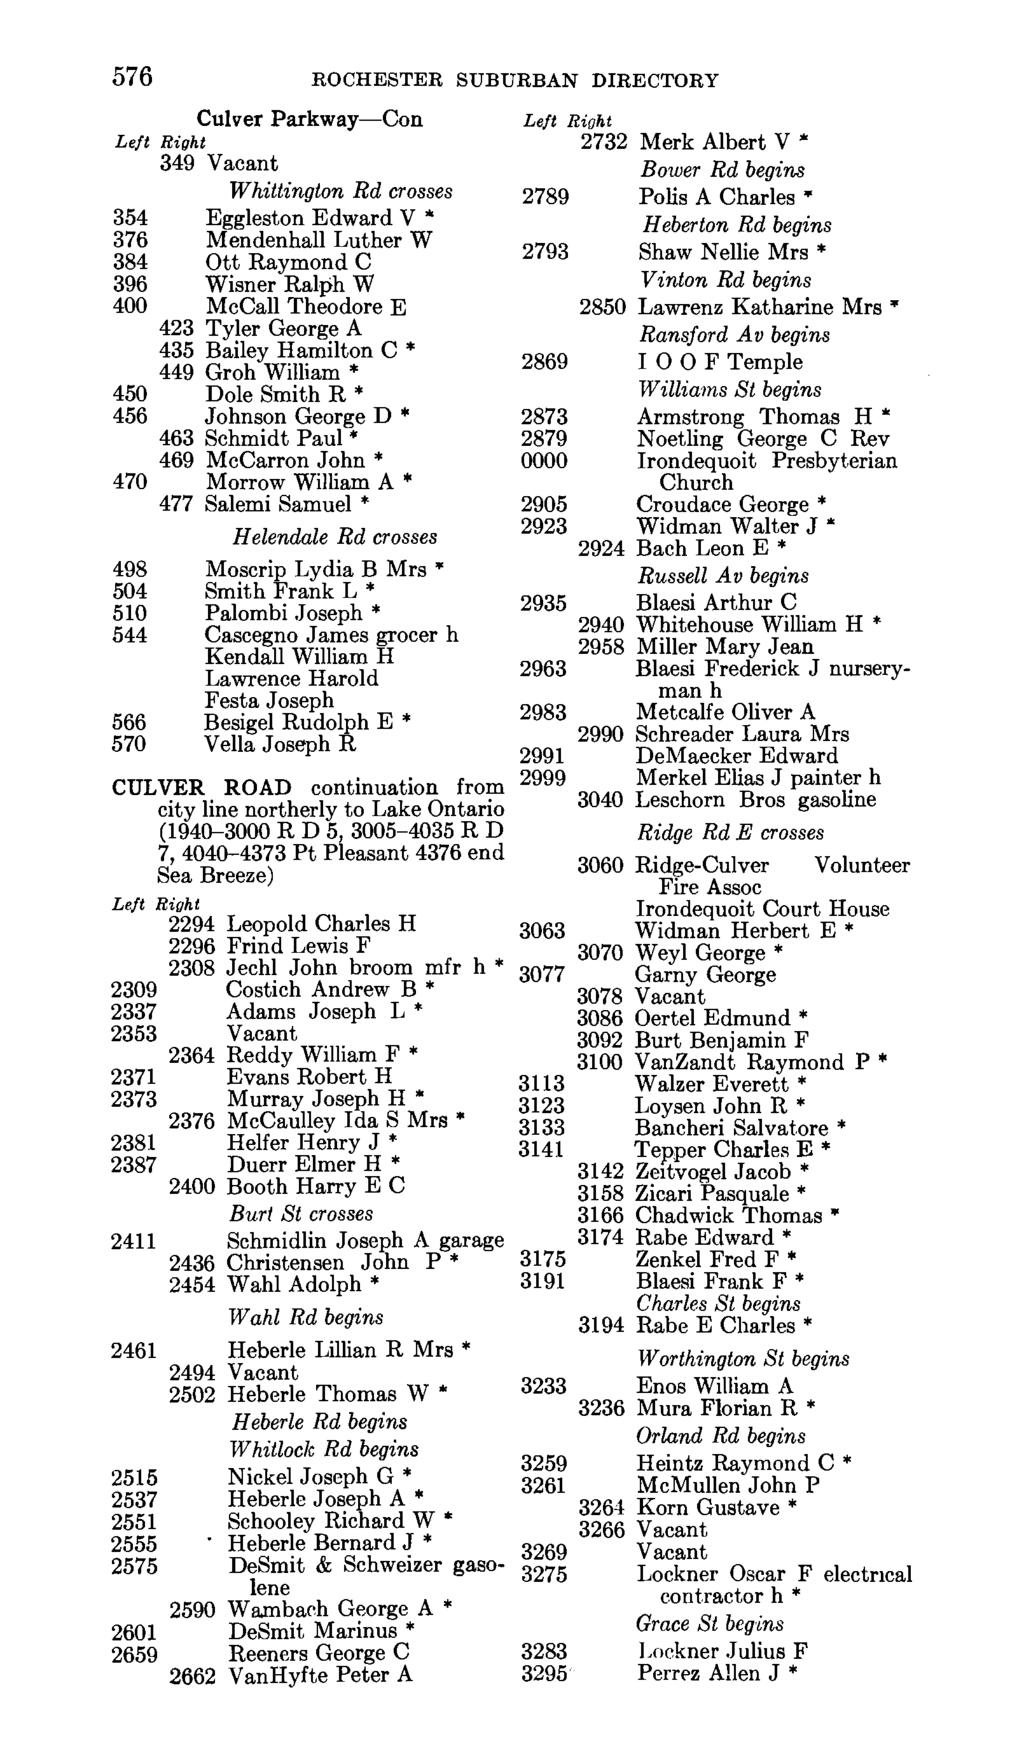 ' Central Library of Rochester and Monroe County Miscellaneous Directories 576 ROCHESTER SUBURBAN DIRECTORY Culver Parkway 349 Vacant Con Whittington Rd crosses 354 Eggleston Edward V * 376